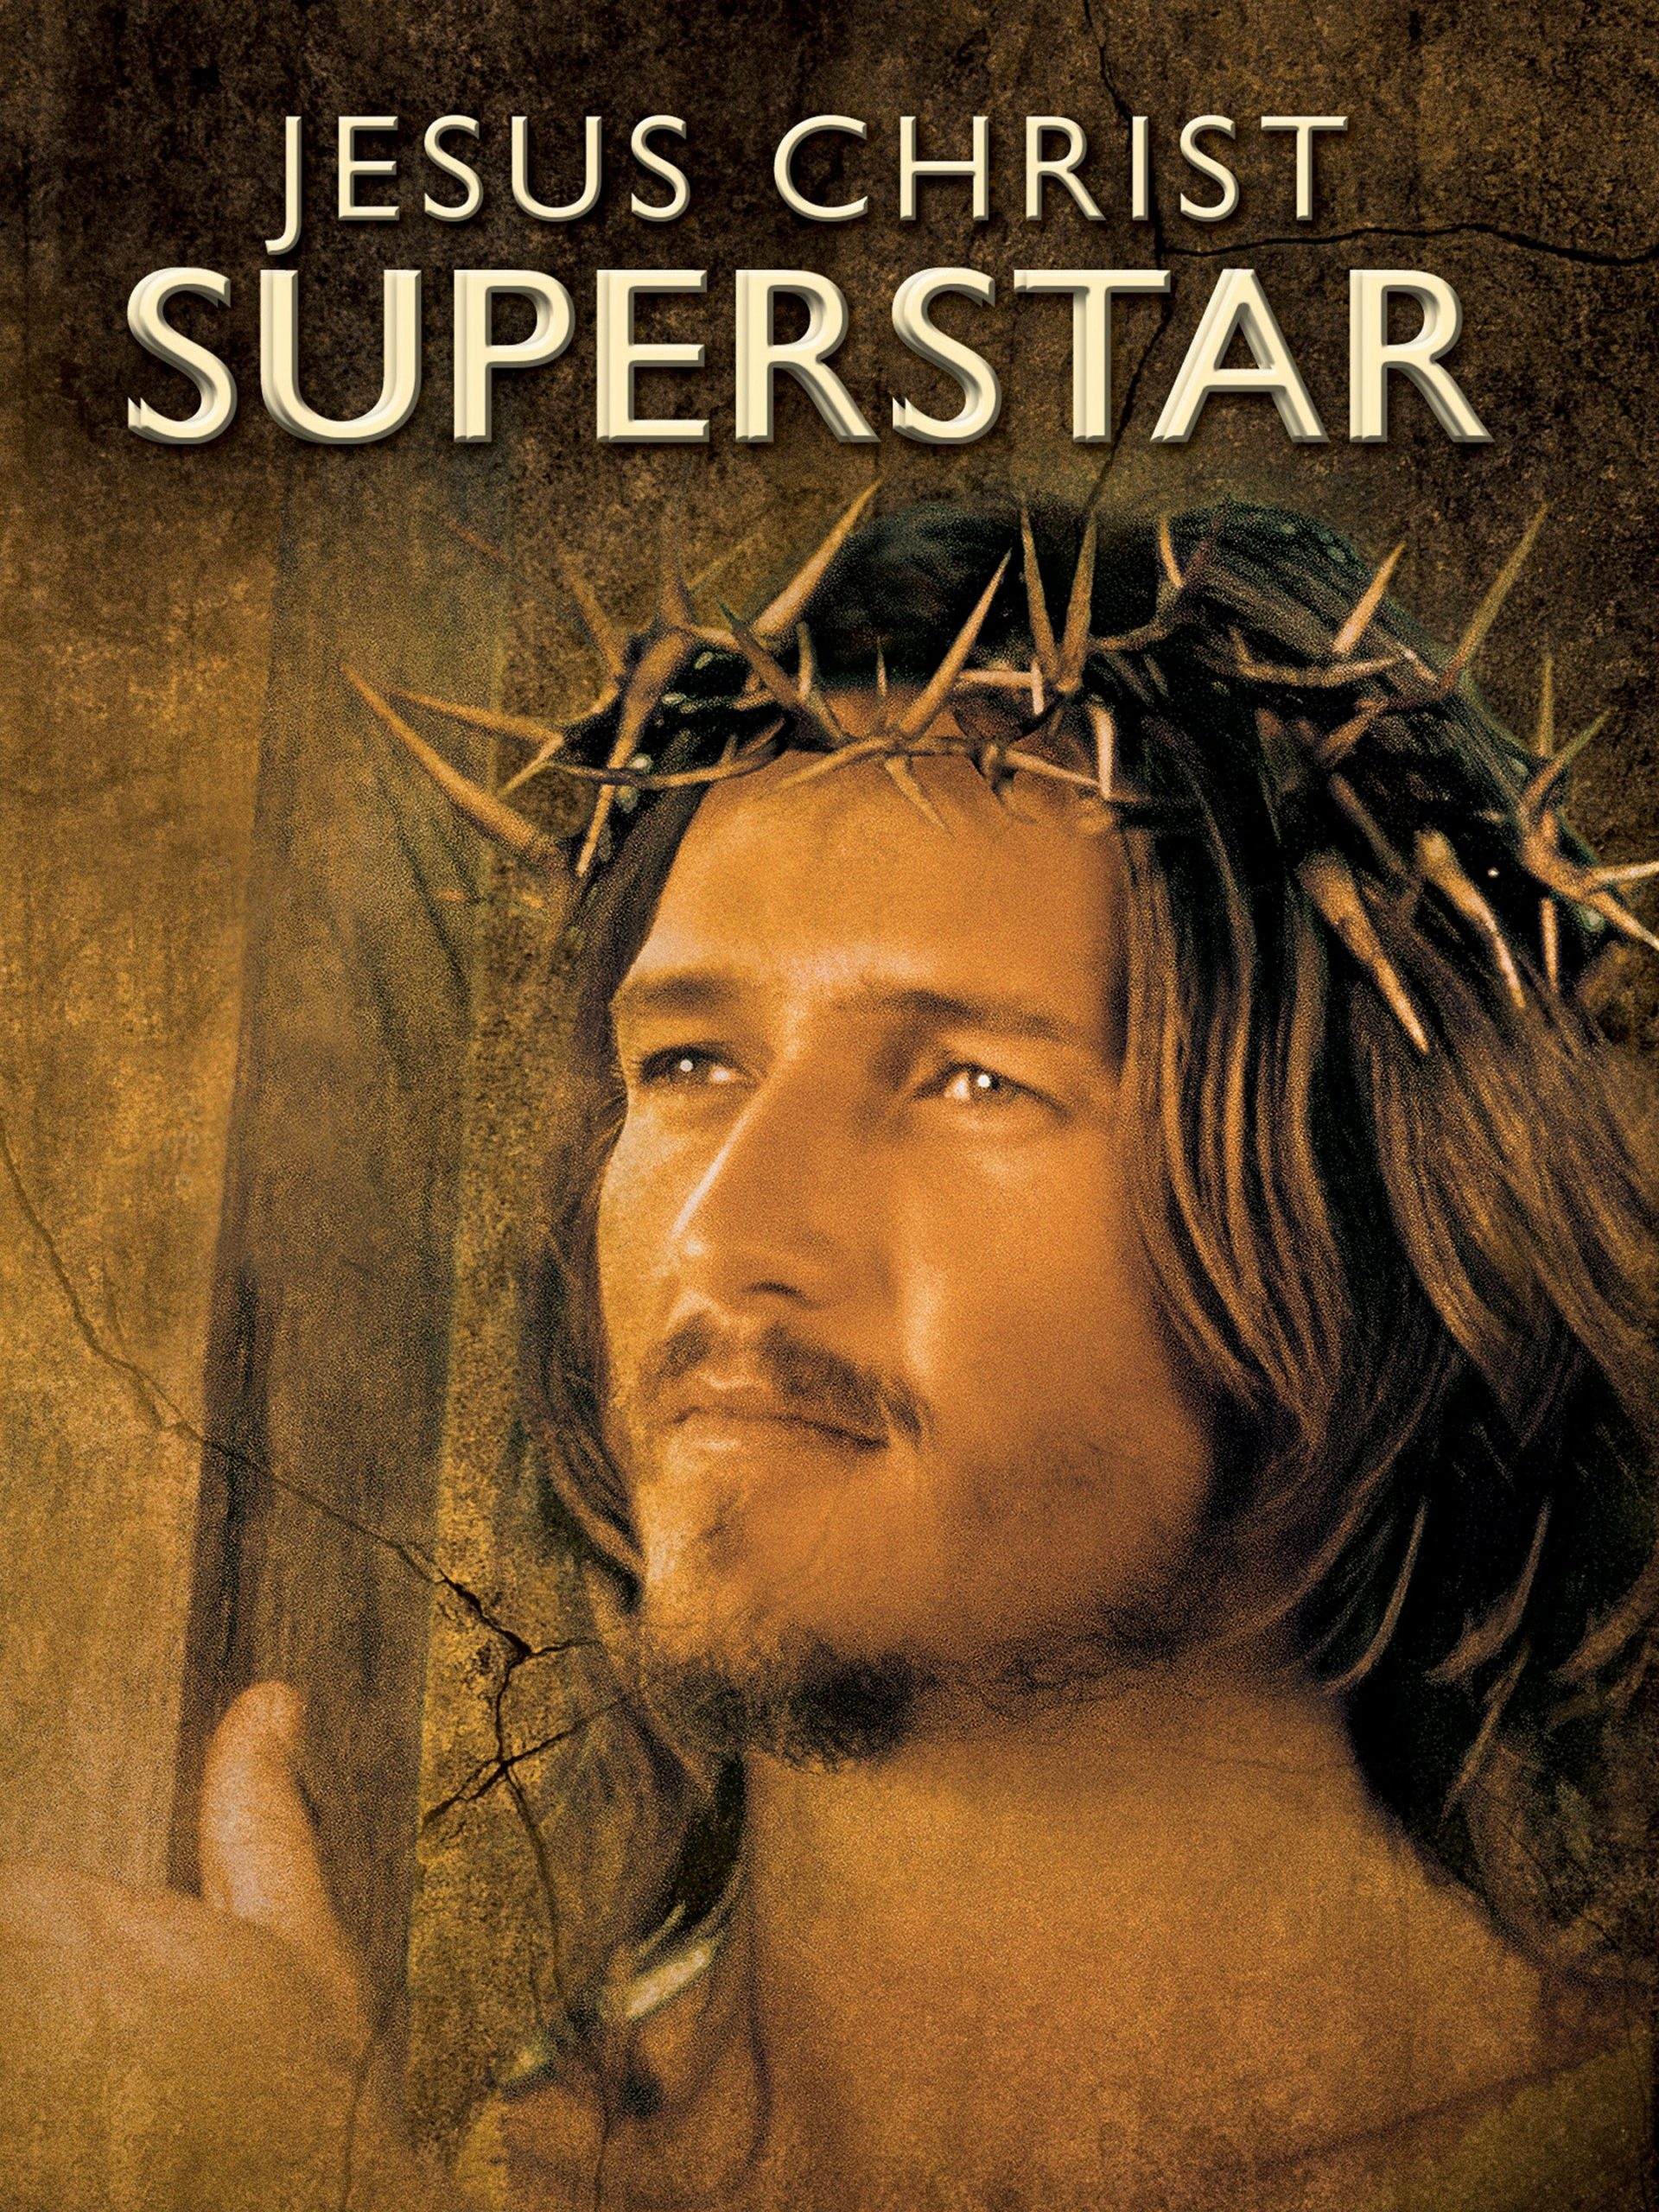 Jesus Christ Superstar Starring  Ted Neeley as Jesus Christ © 2017 NBCUniversal All Rights Reserved